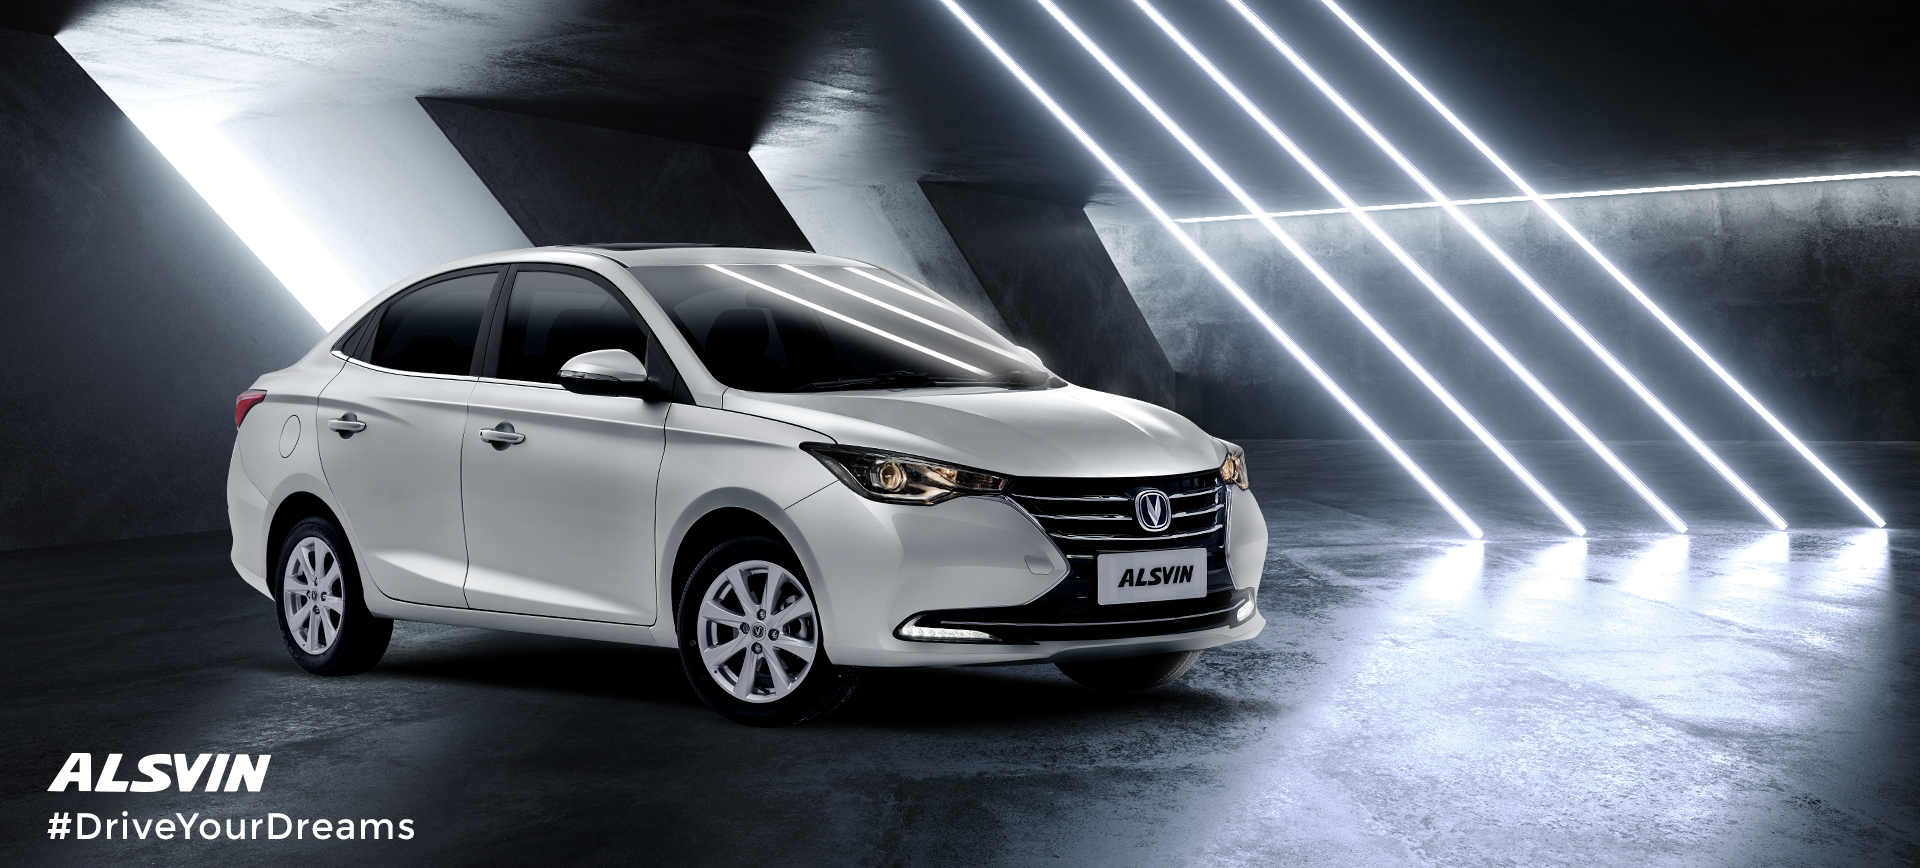 Changan Alsvin Price in Pakistan 2021 Specs Features